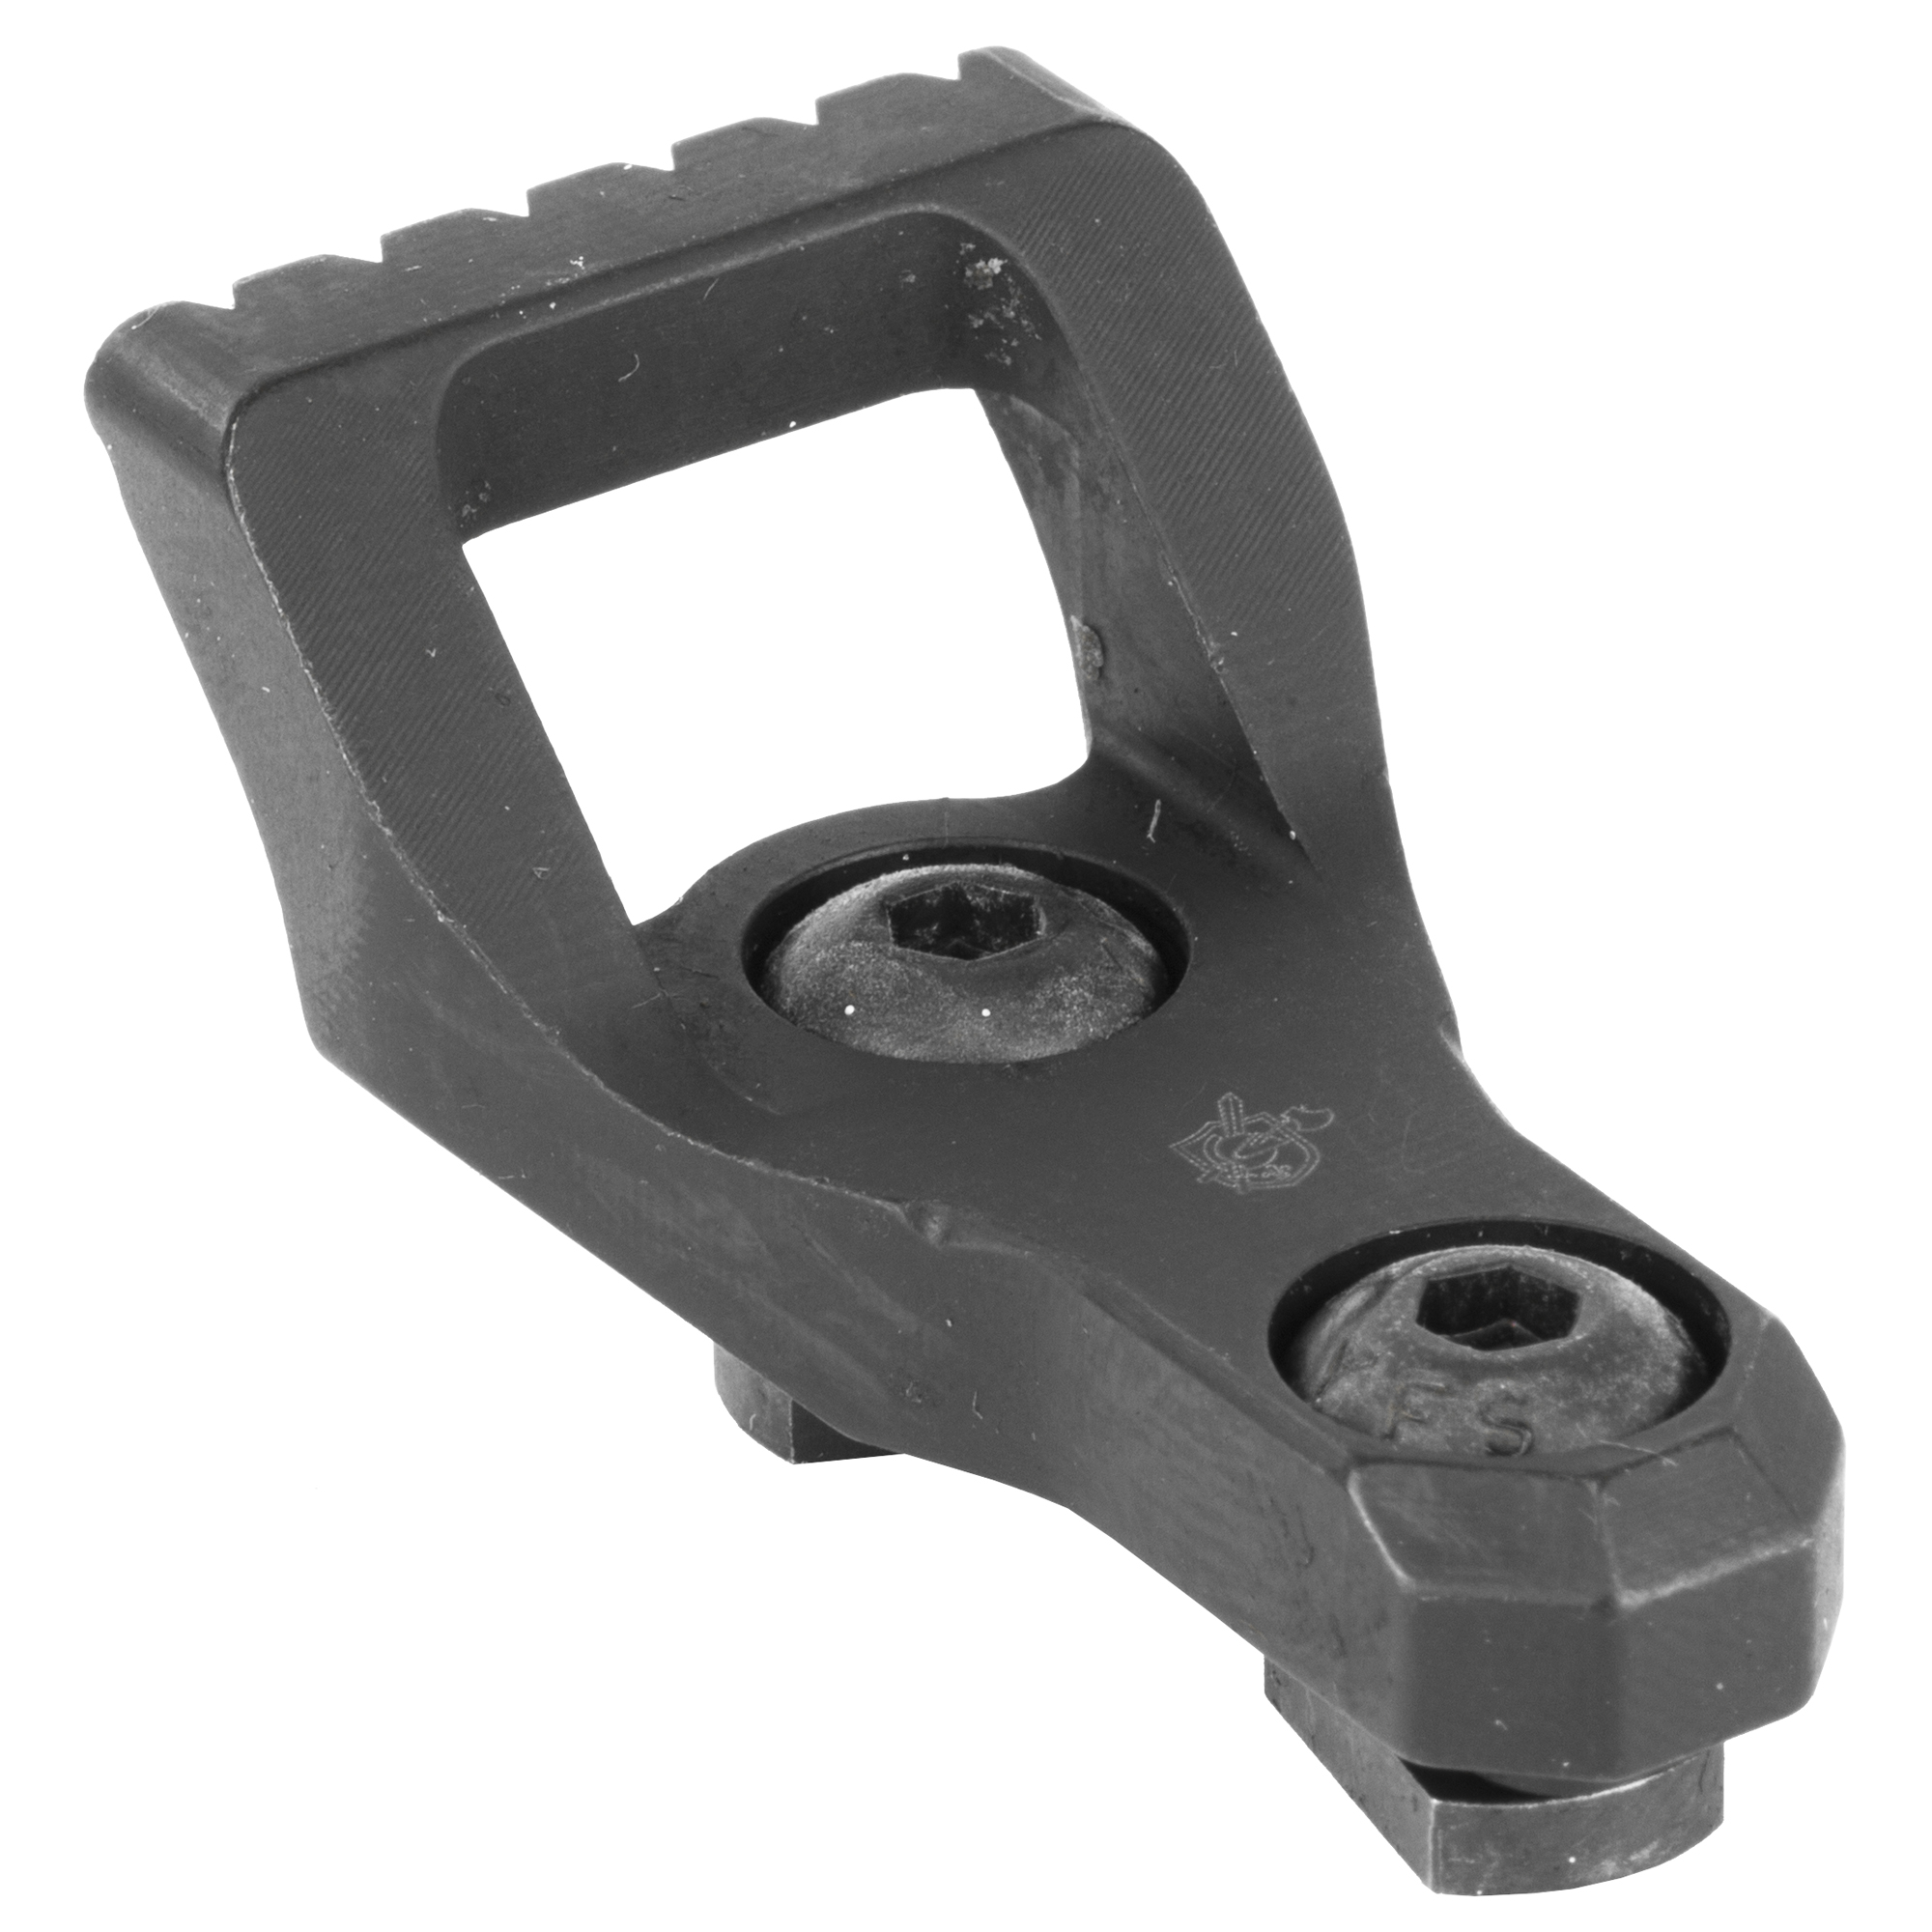 """Knights Armament Co.'s M-LOK Skeletonized Barrier Stop assembly eliminates all unnecessary weight while still being robust enough for hard-use. An aggressively serrated front edge will find grip on most surfaces"""" at any angle of contact. A sling can be attached directly to the Barrier Stop to eliminate the need for additional sling mounting points."""